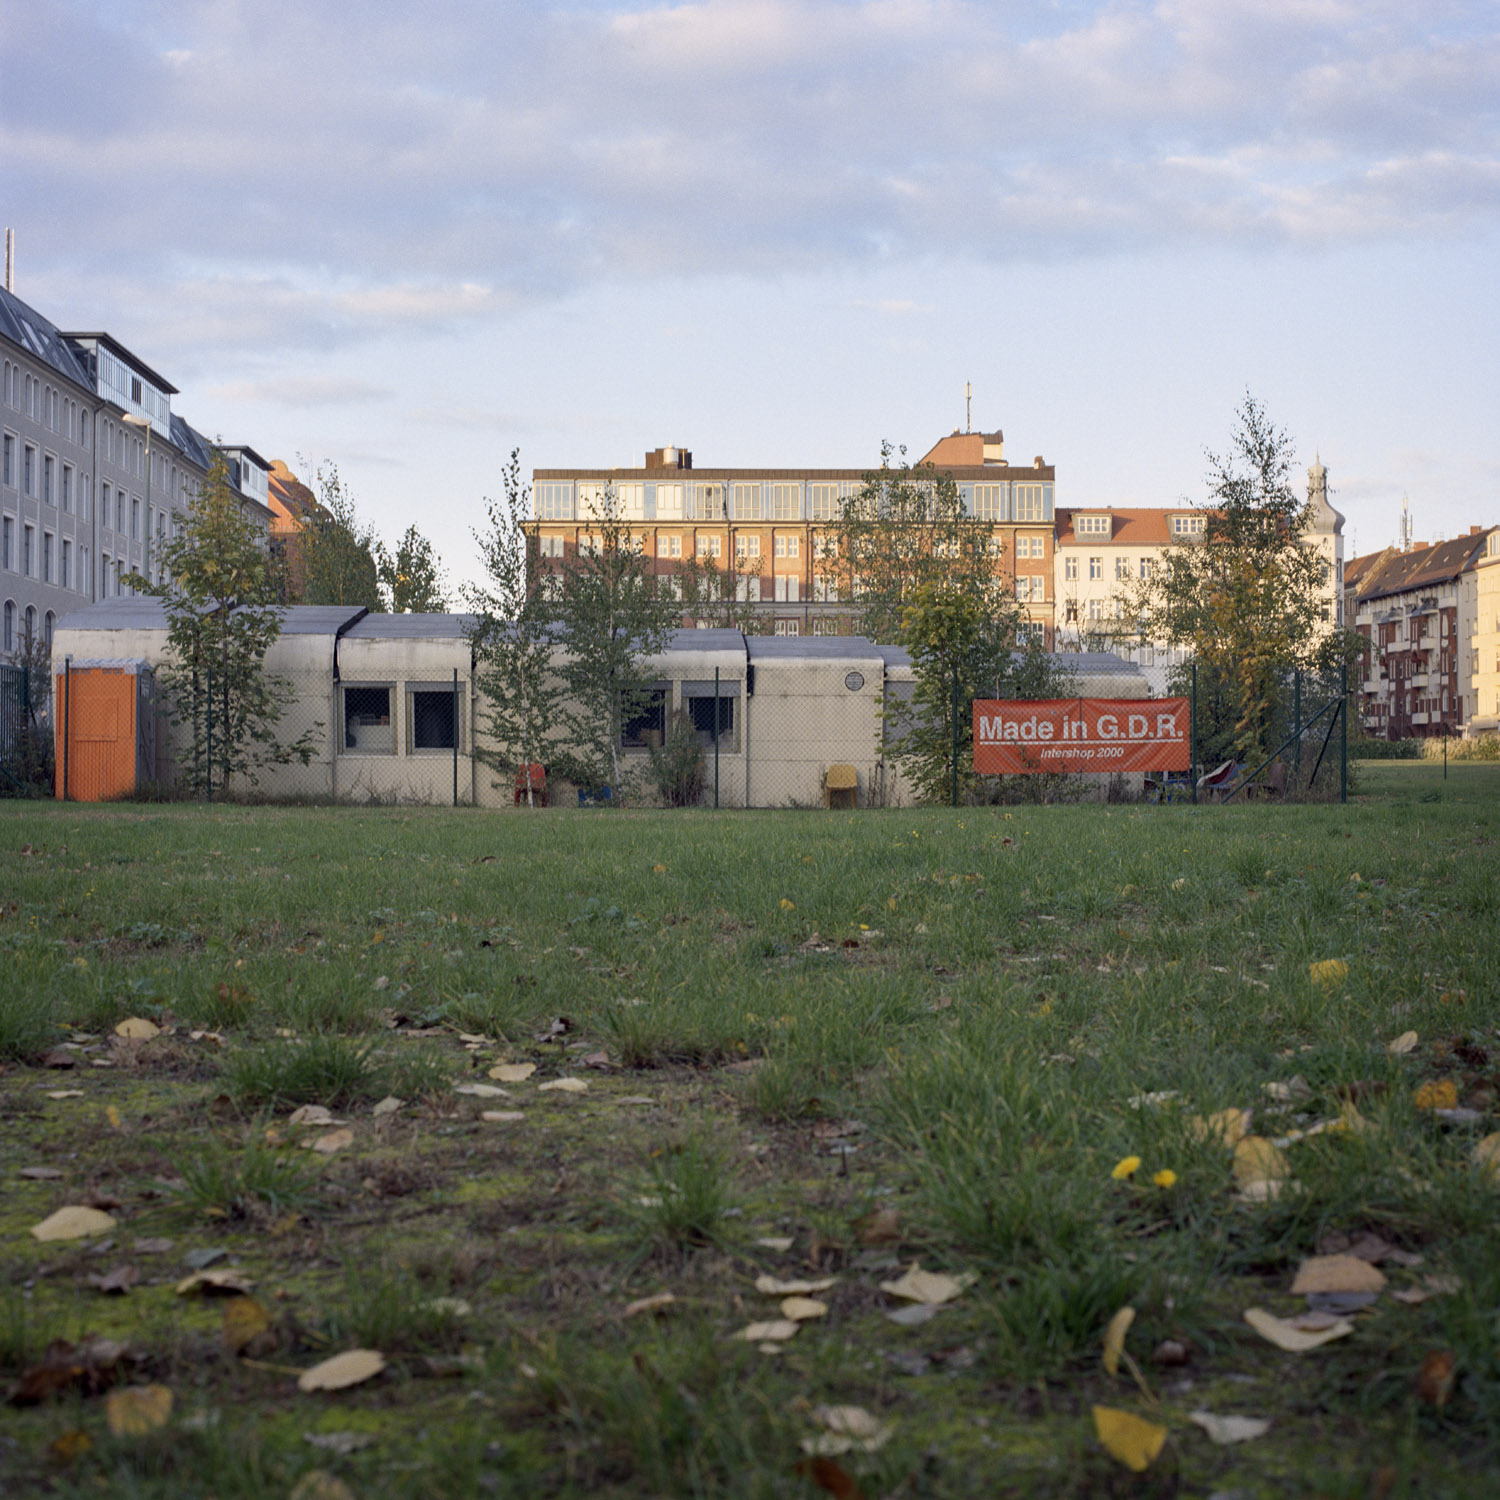 Made in G.D.R, 2008, from Berlin Project by Abby Storey